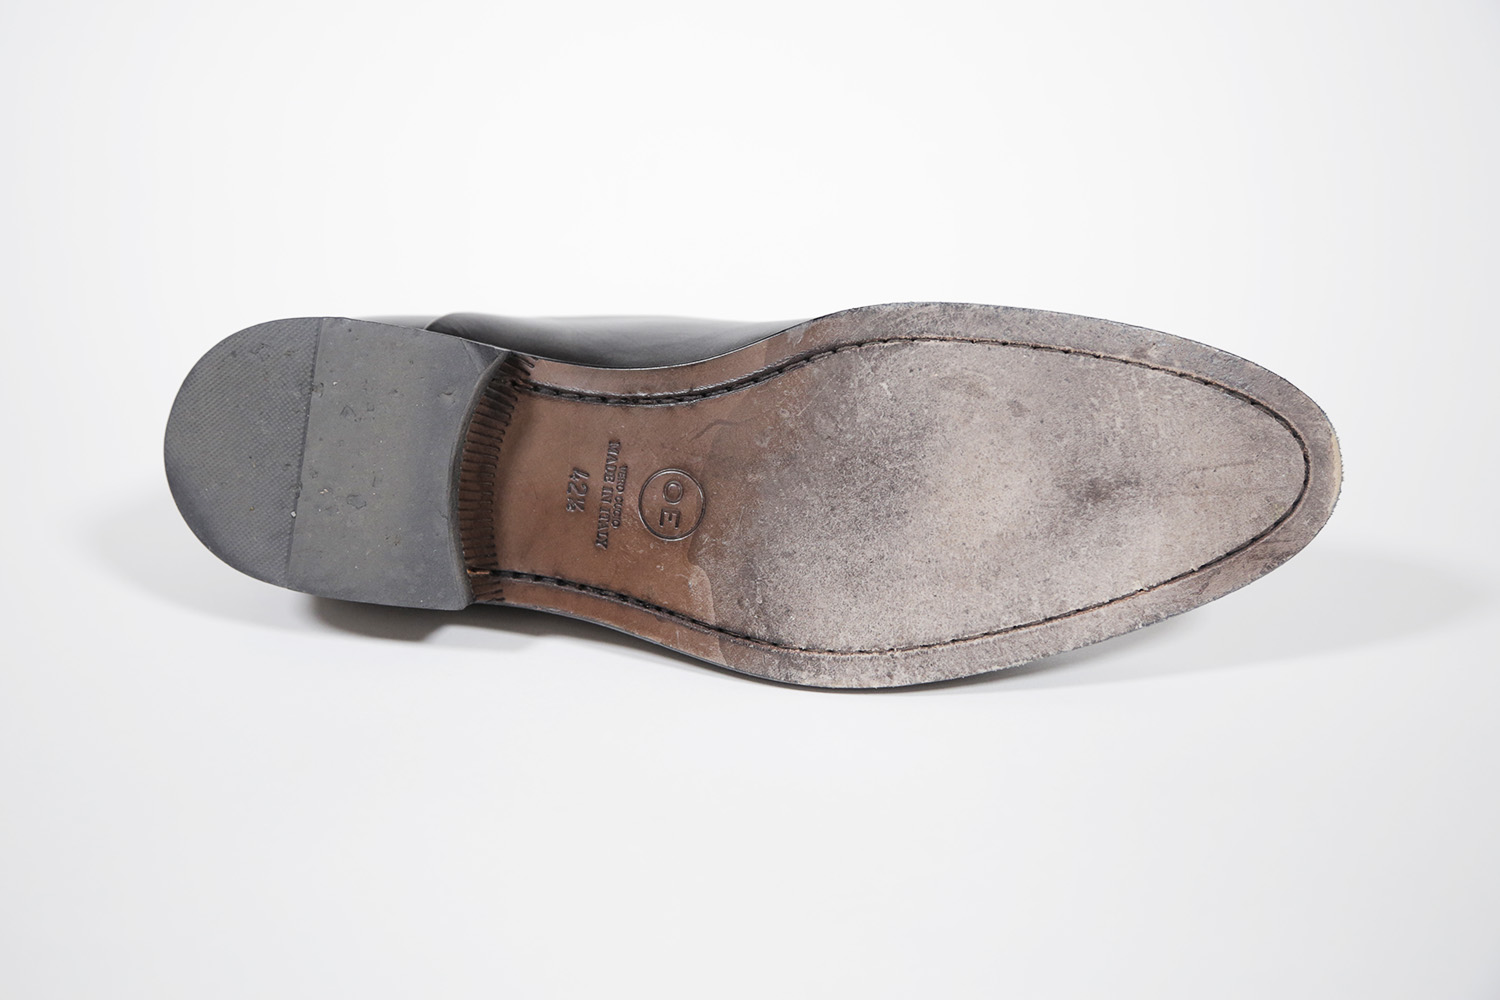 owen edward shoe sole